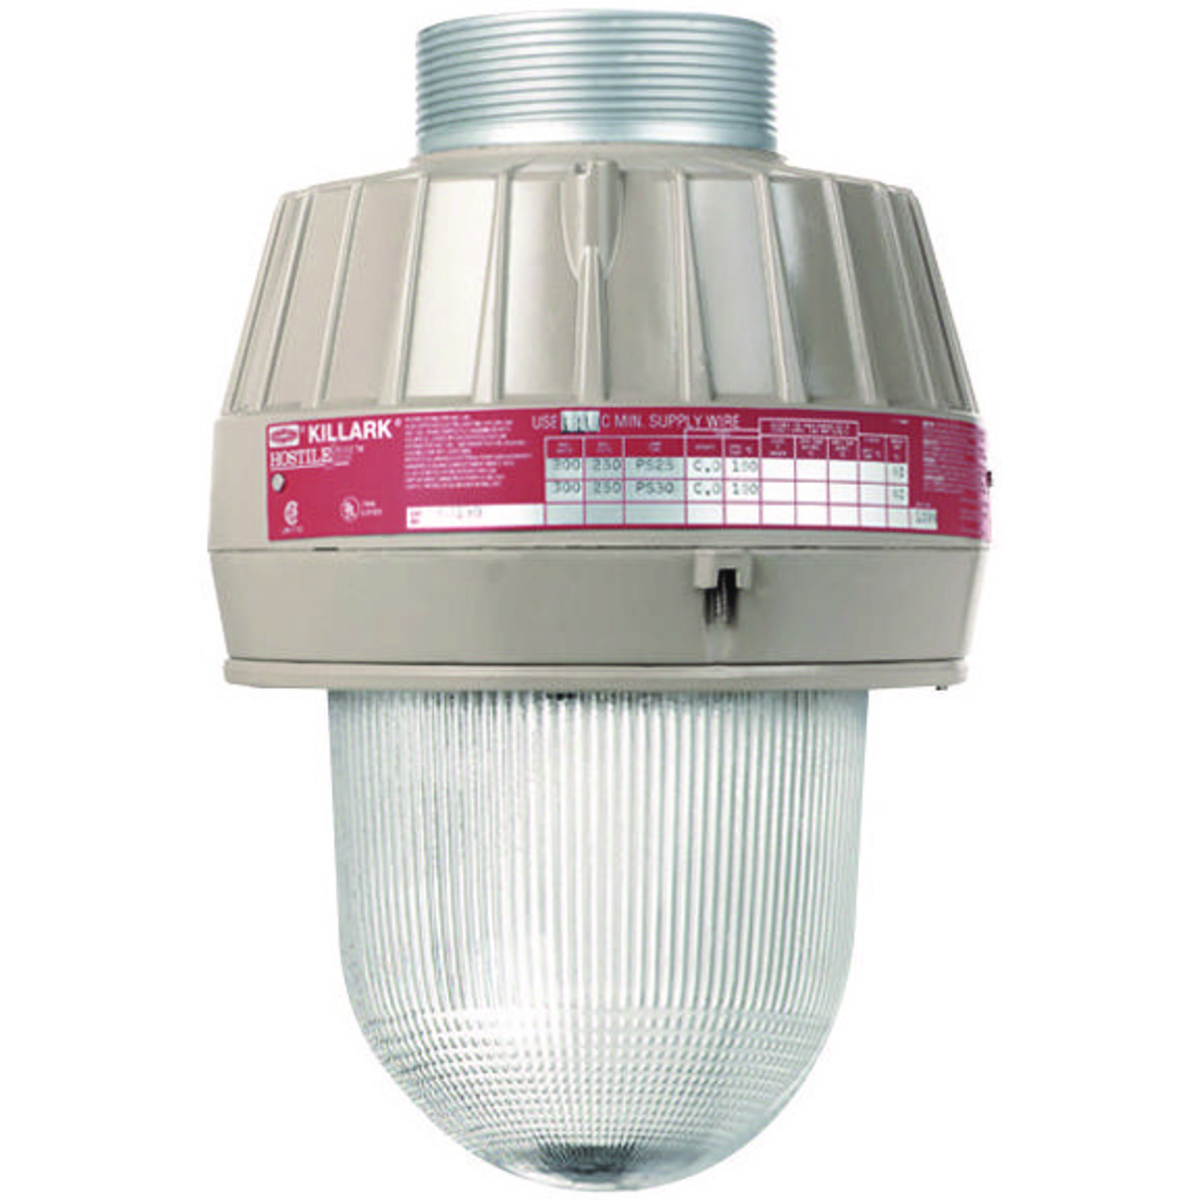 Metal Halide Lamps Hazardous Waste: Killark